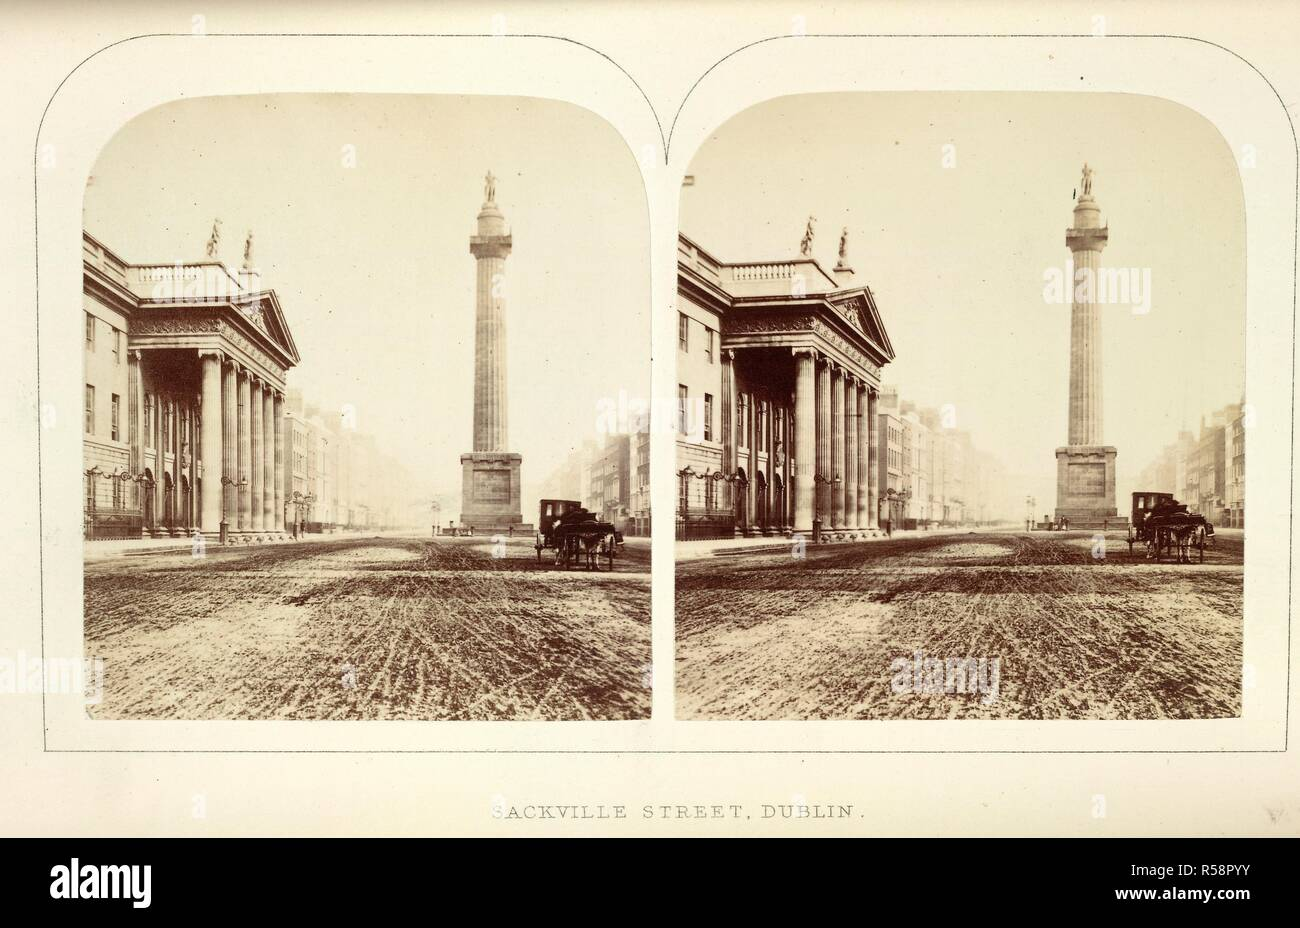 Sackville Street, Dublin  The Stereoscopic Magazine: a gallery of